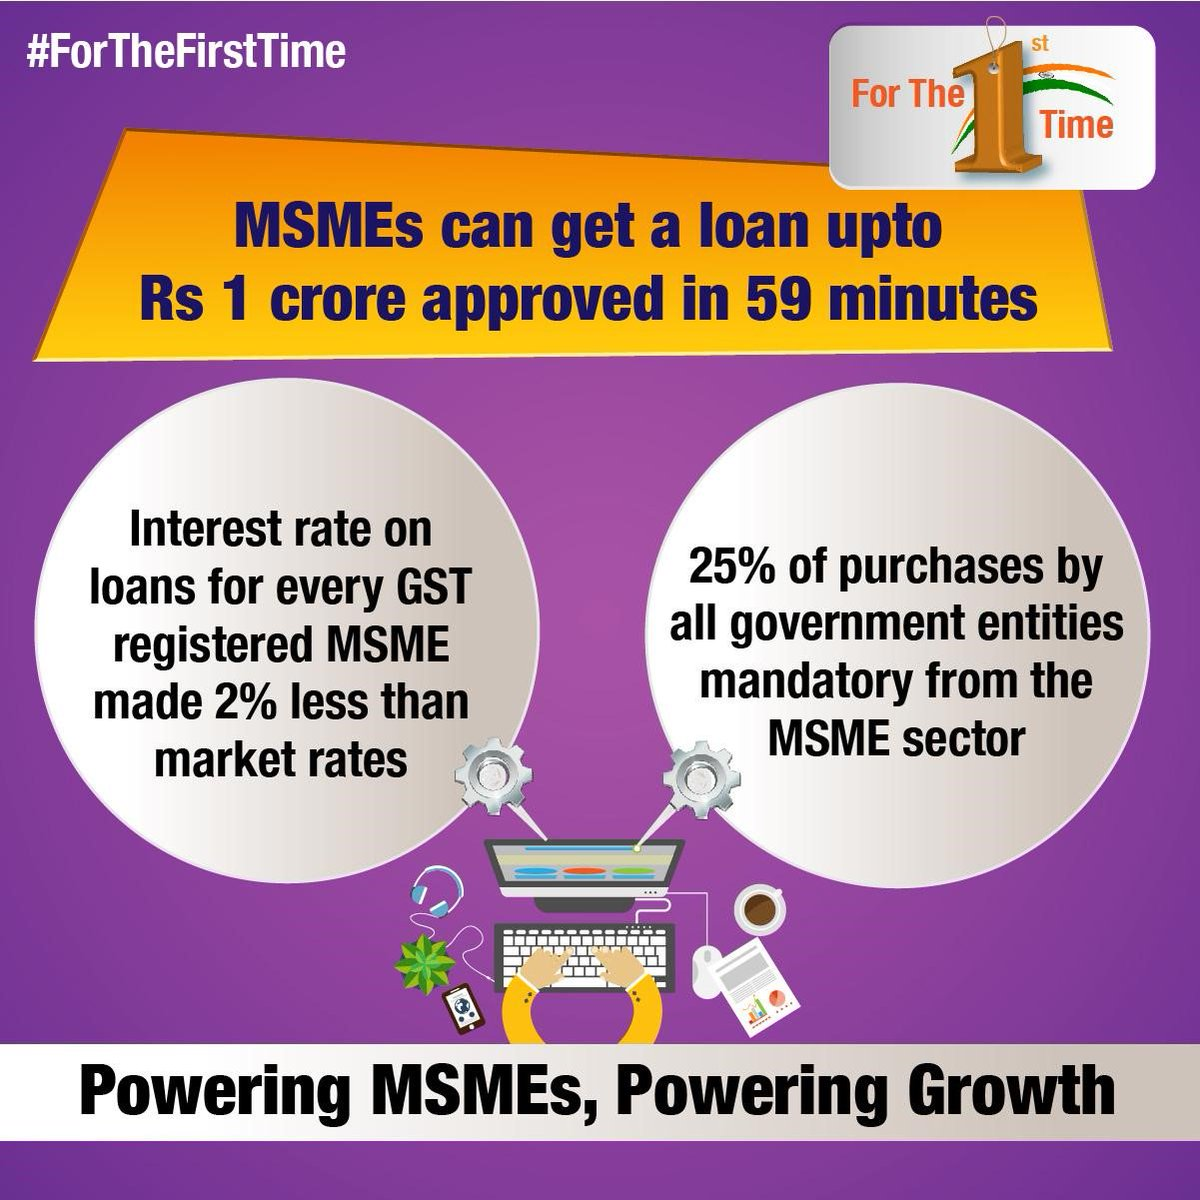 #ForTheFirstTime MSMEs can get a loan up to Rs. 1 crore approved in 59 minutes.